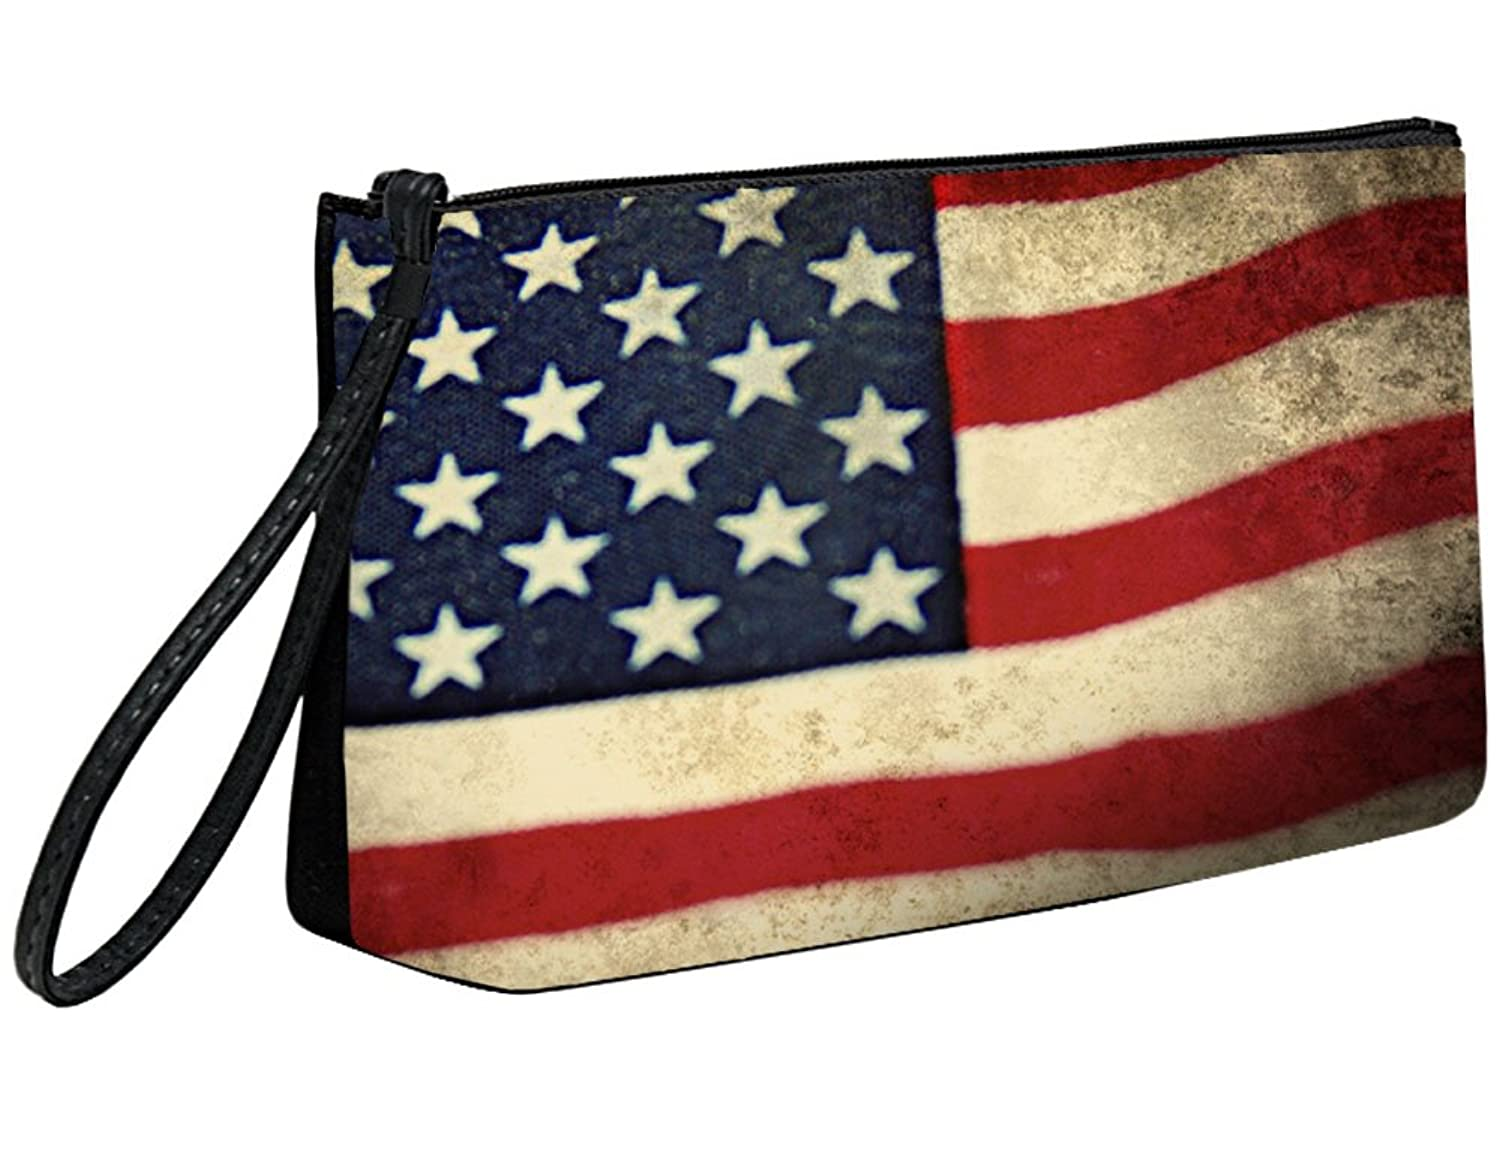 Snaptotes Patriotic Flag Wristlet Clutch Purse